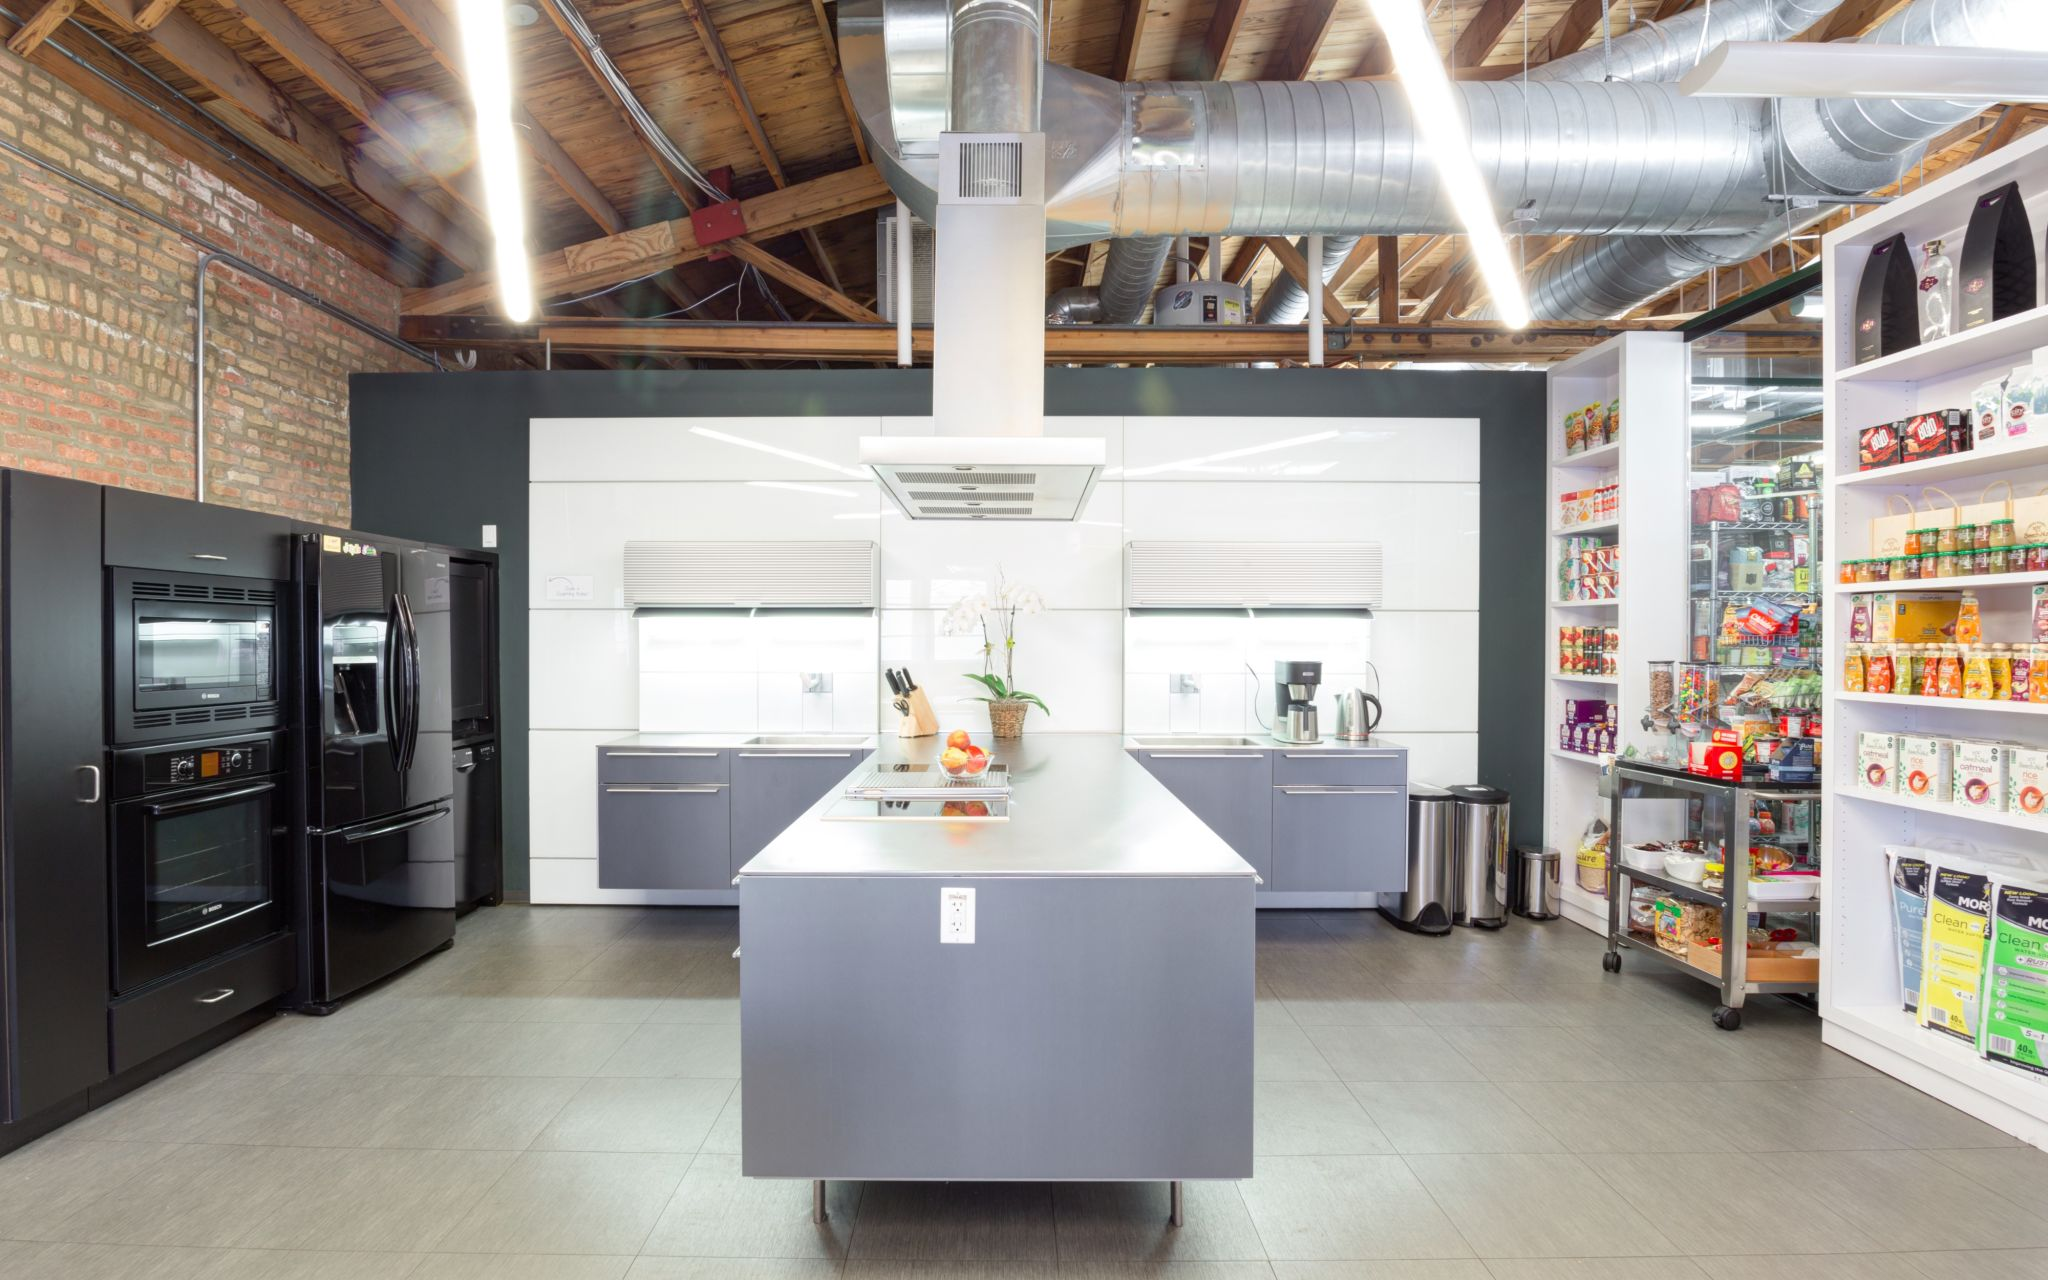 West Loop Commercial Kitchen & Meeting Space, Chicago, IL | Event ...